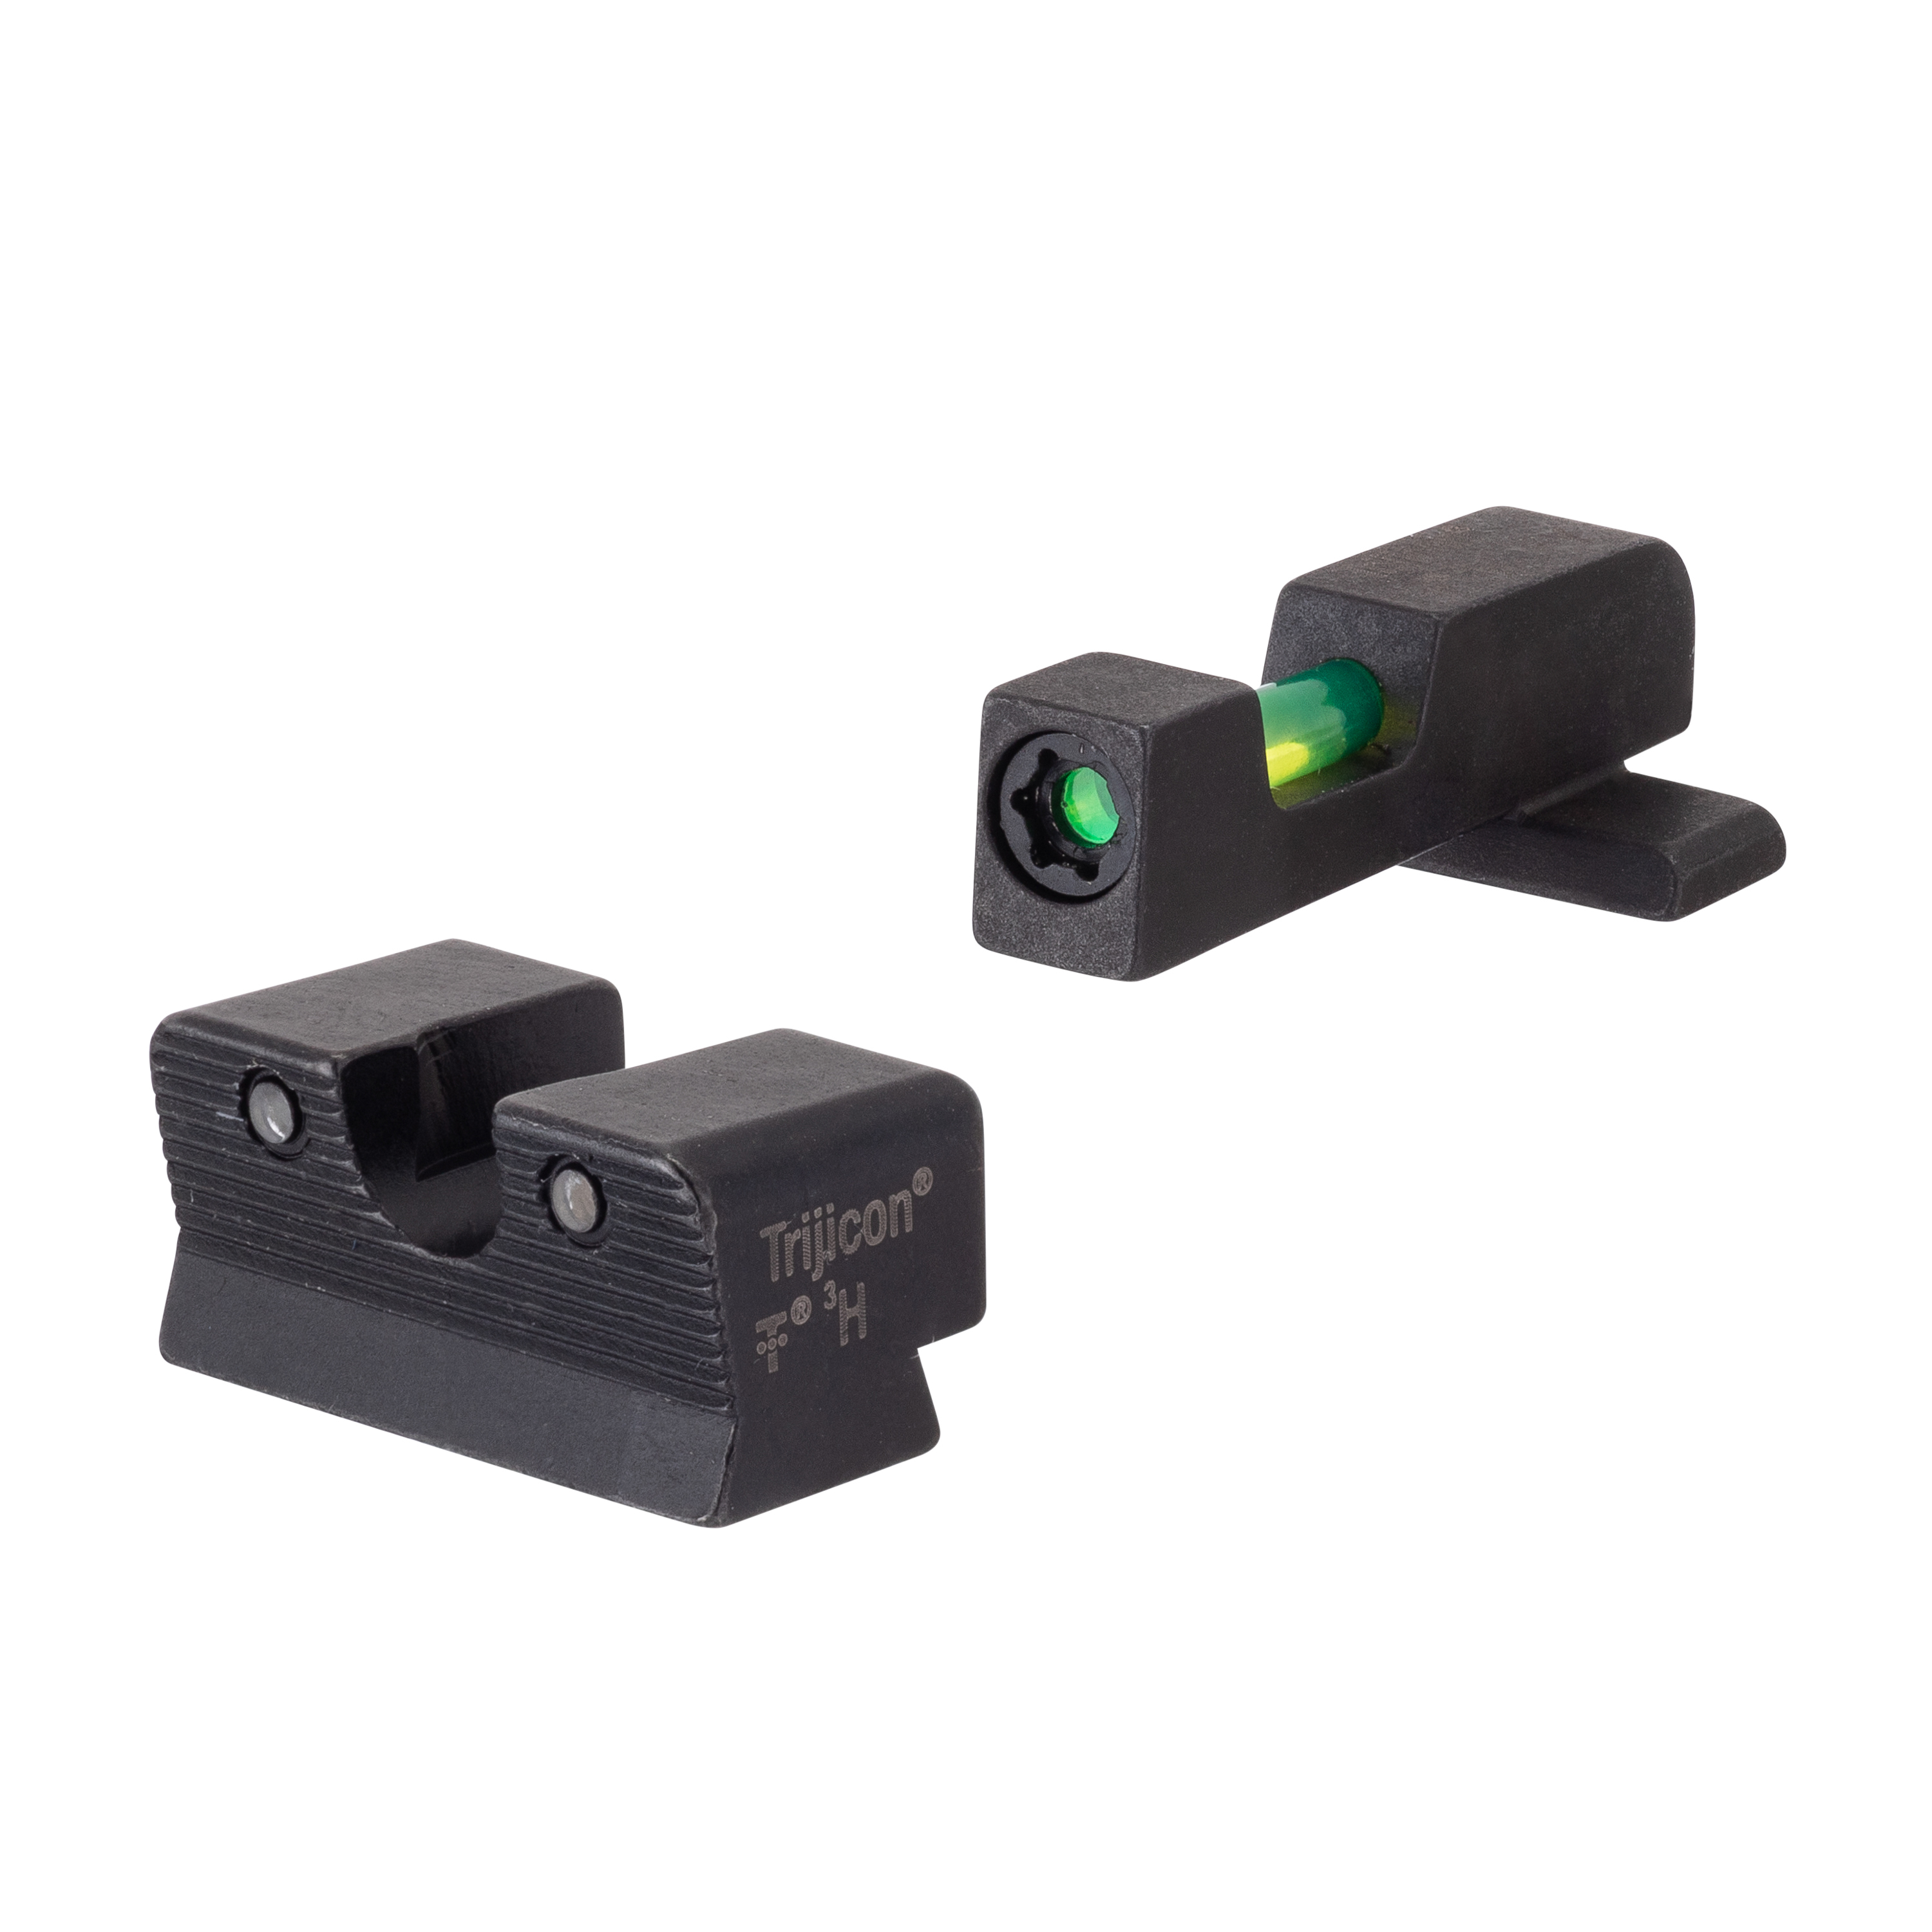 Trijicon DI™ Night Sight Set - for Sig Sauer® #8 Front/#8 Rear